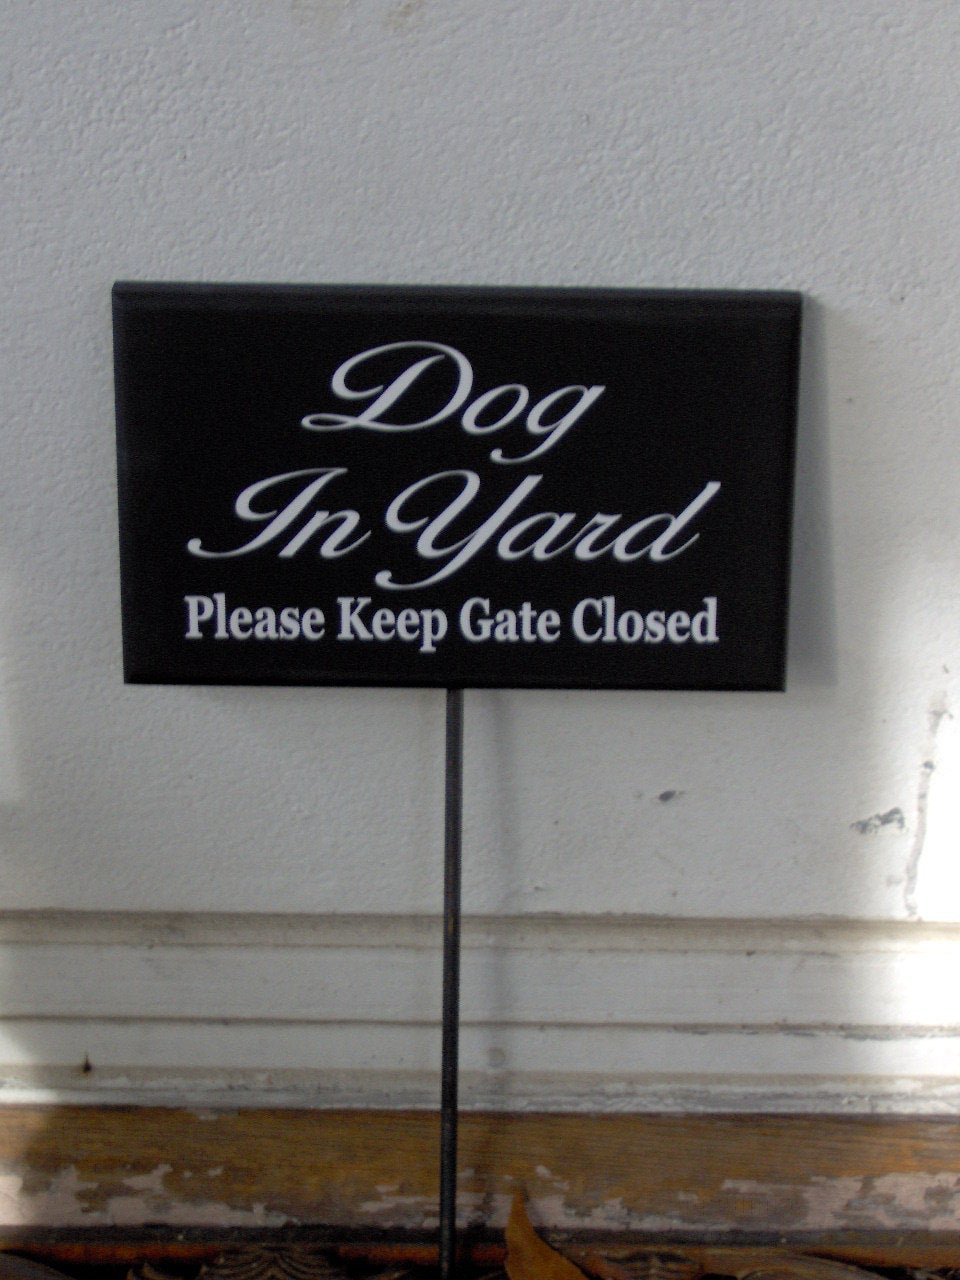 Dog In Yard Please Keep Gate Closed Wood Vinyl Sign Rod Stake Yard Garden Fence Planter Beware Notice Security Decor Art For Home Landscape